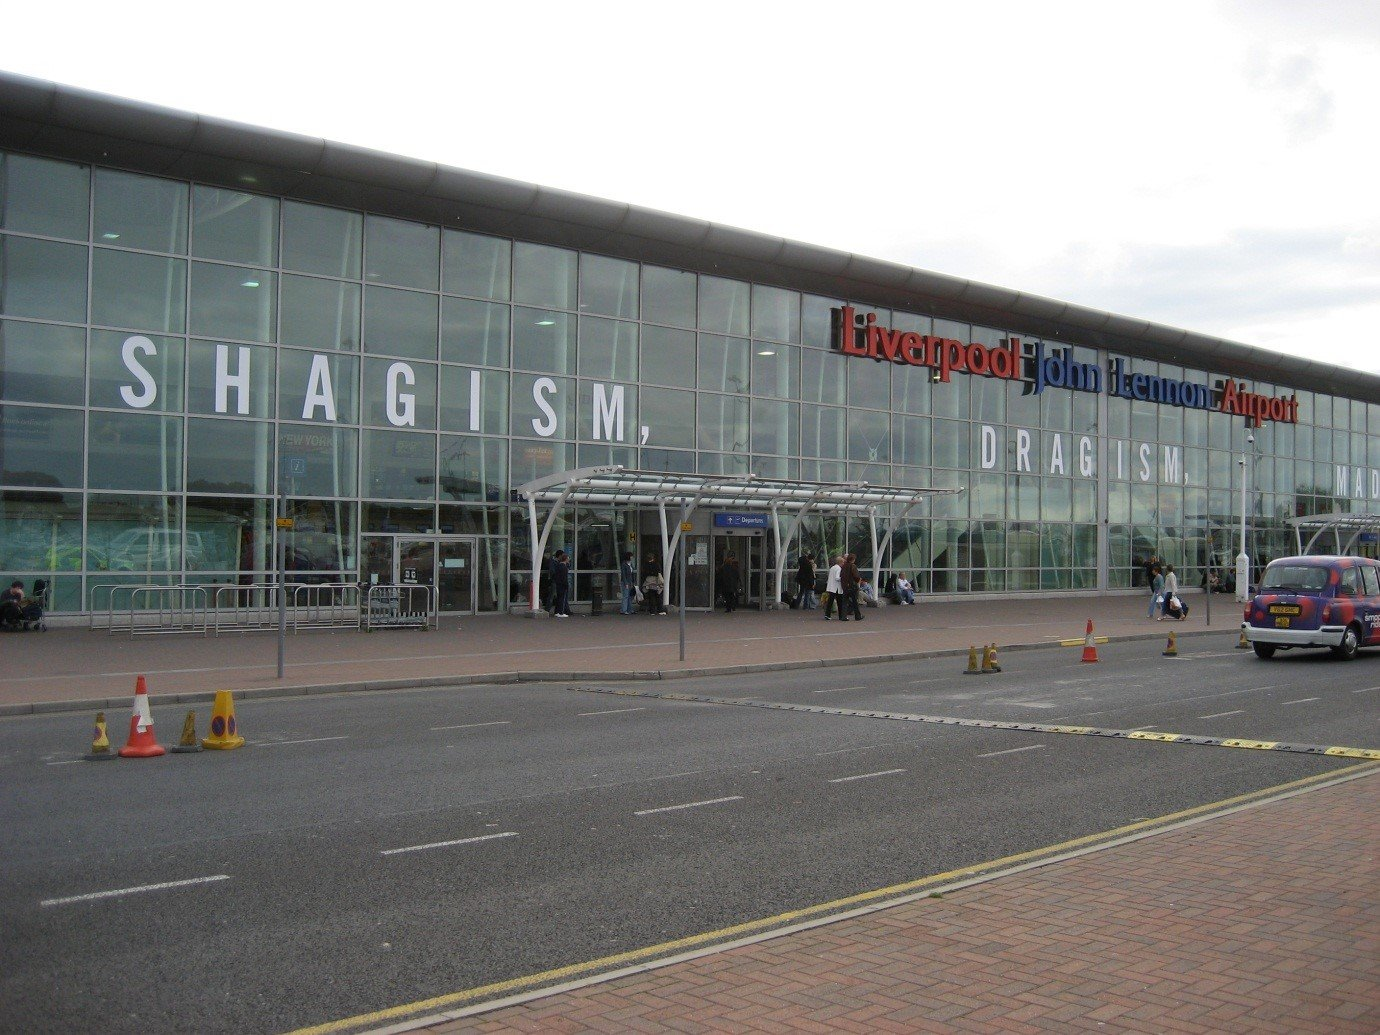 Cheap Hotel And Parking Manchester Airport